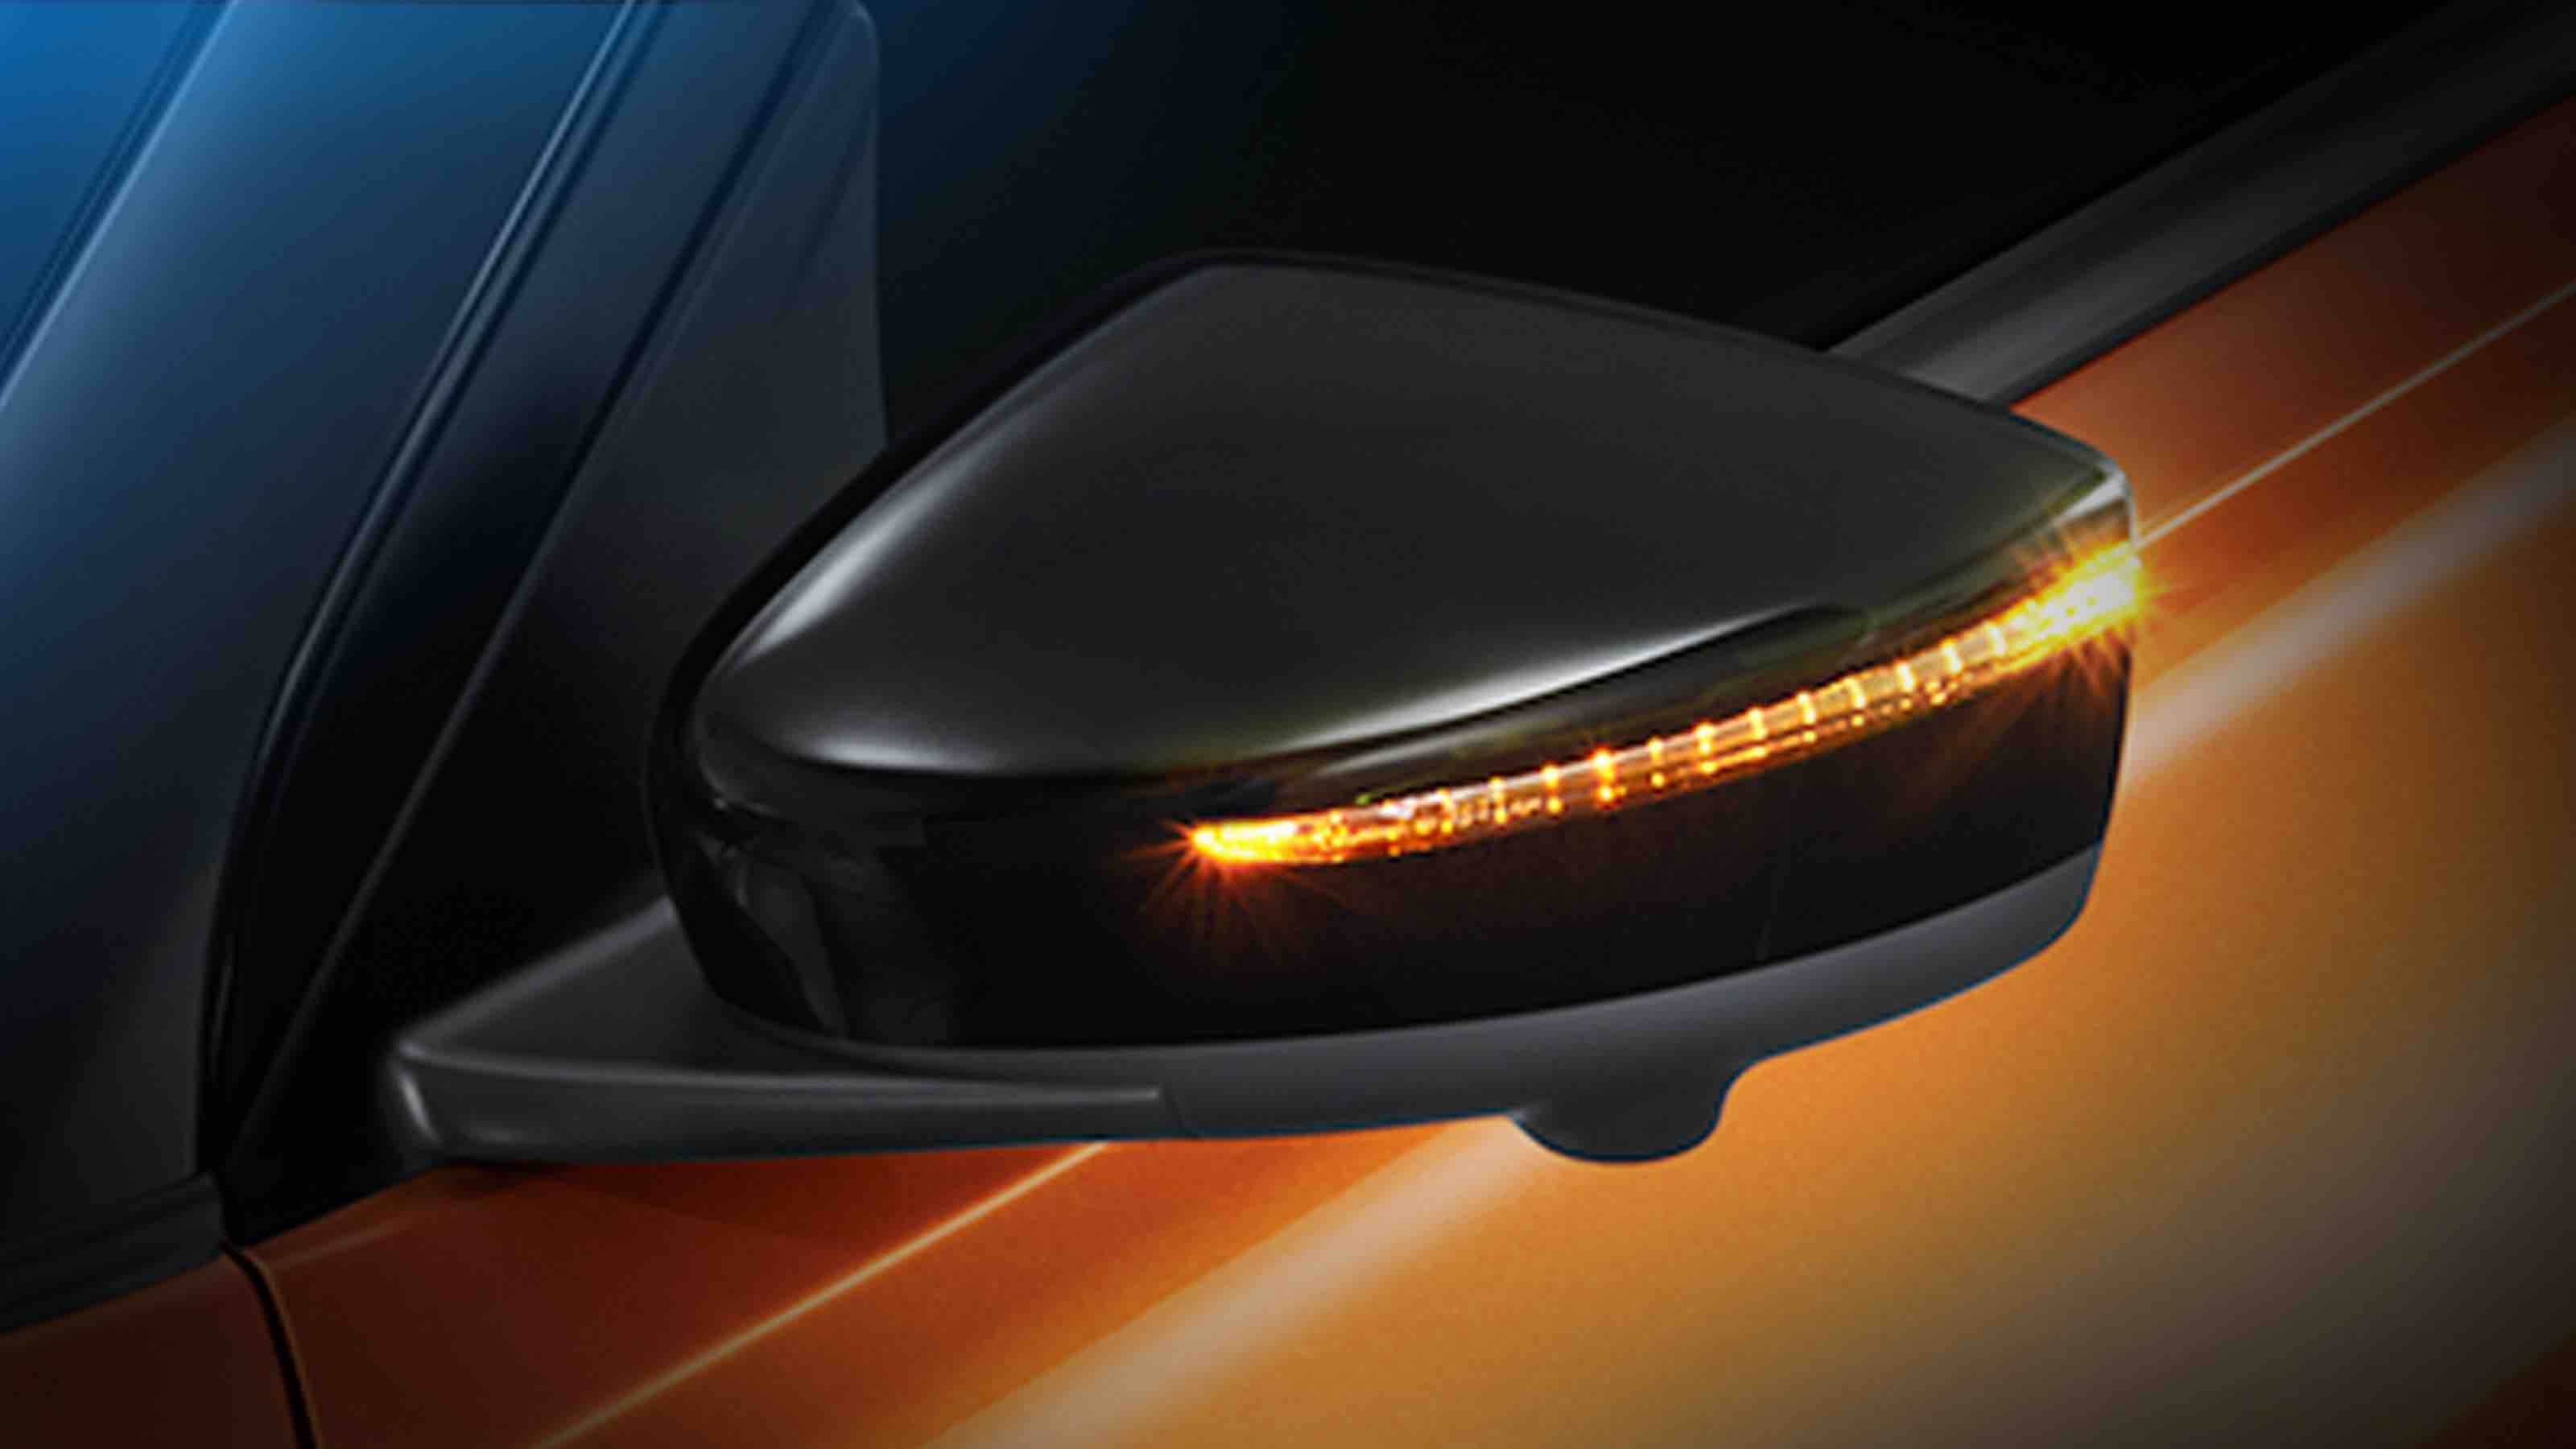 SIDE MIRROR WITH LED TURN SIGNAL